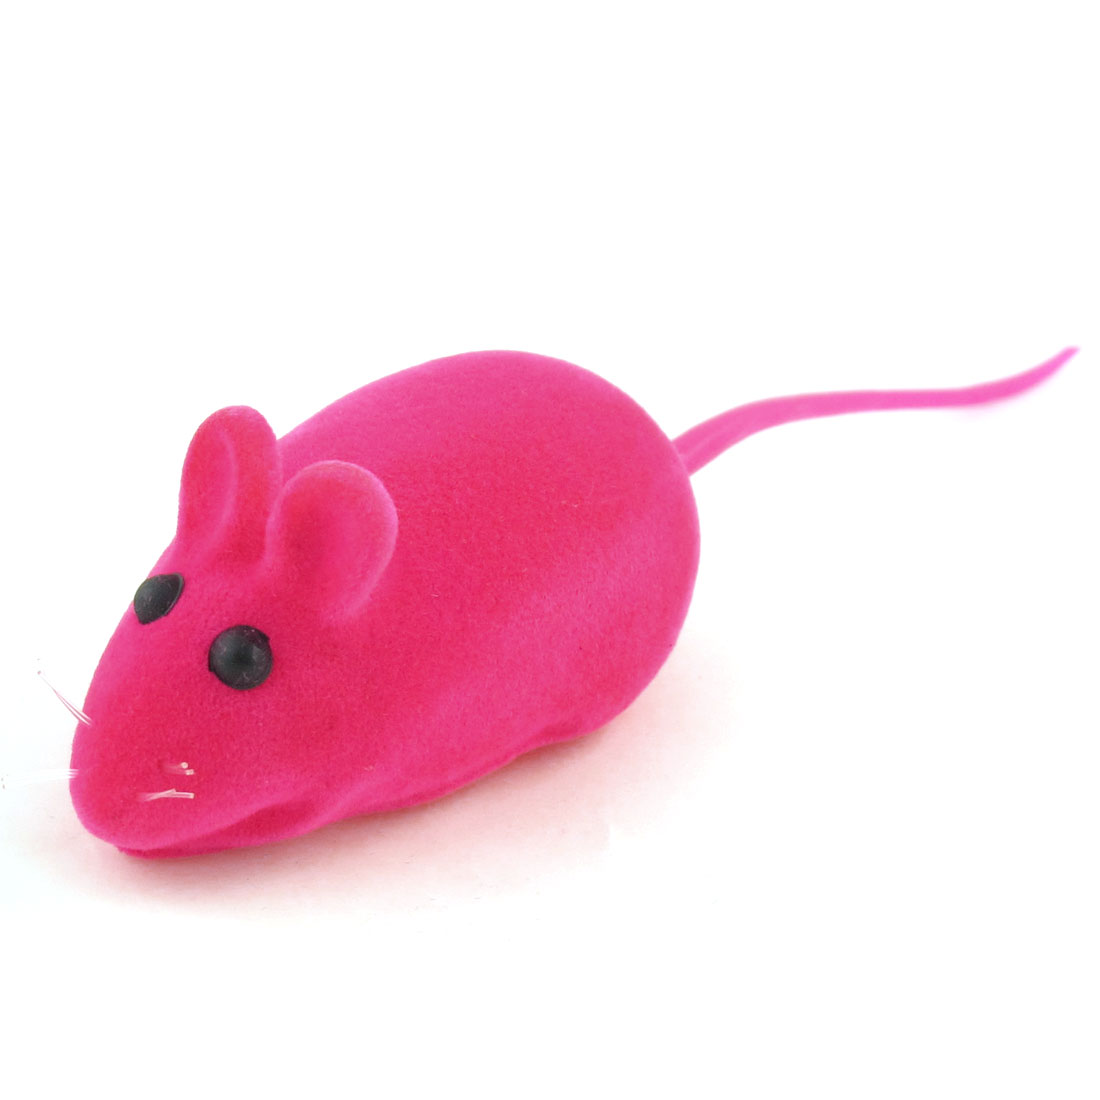 Fuchsia Black Eyes Mouse Shape Squeaky Chew Toy for Pet Dog